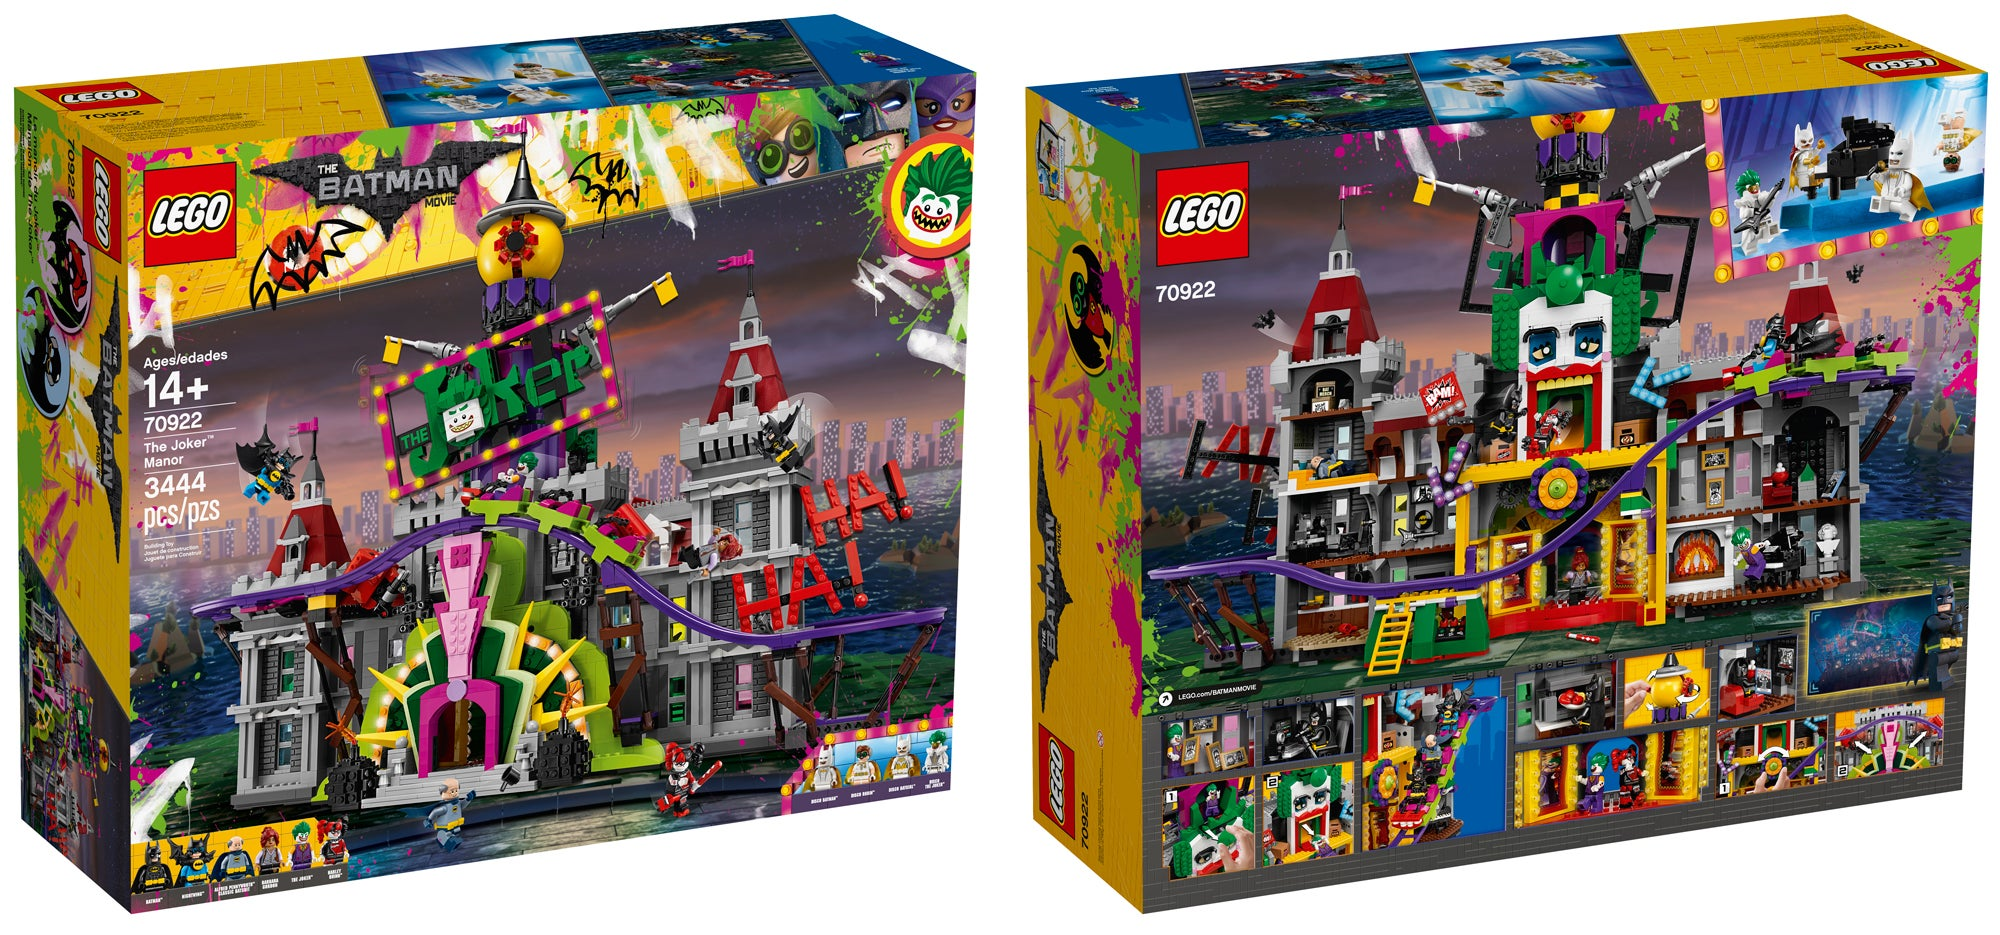 Lego S New Joker Manor Set Includes A Working Roller